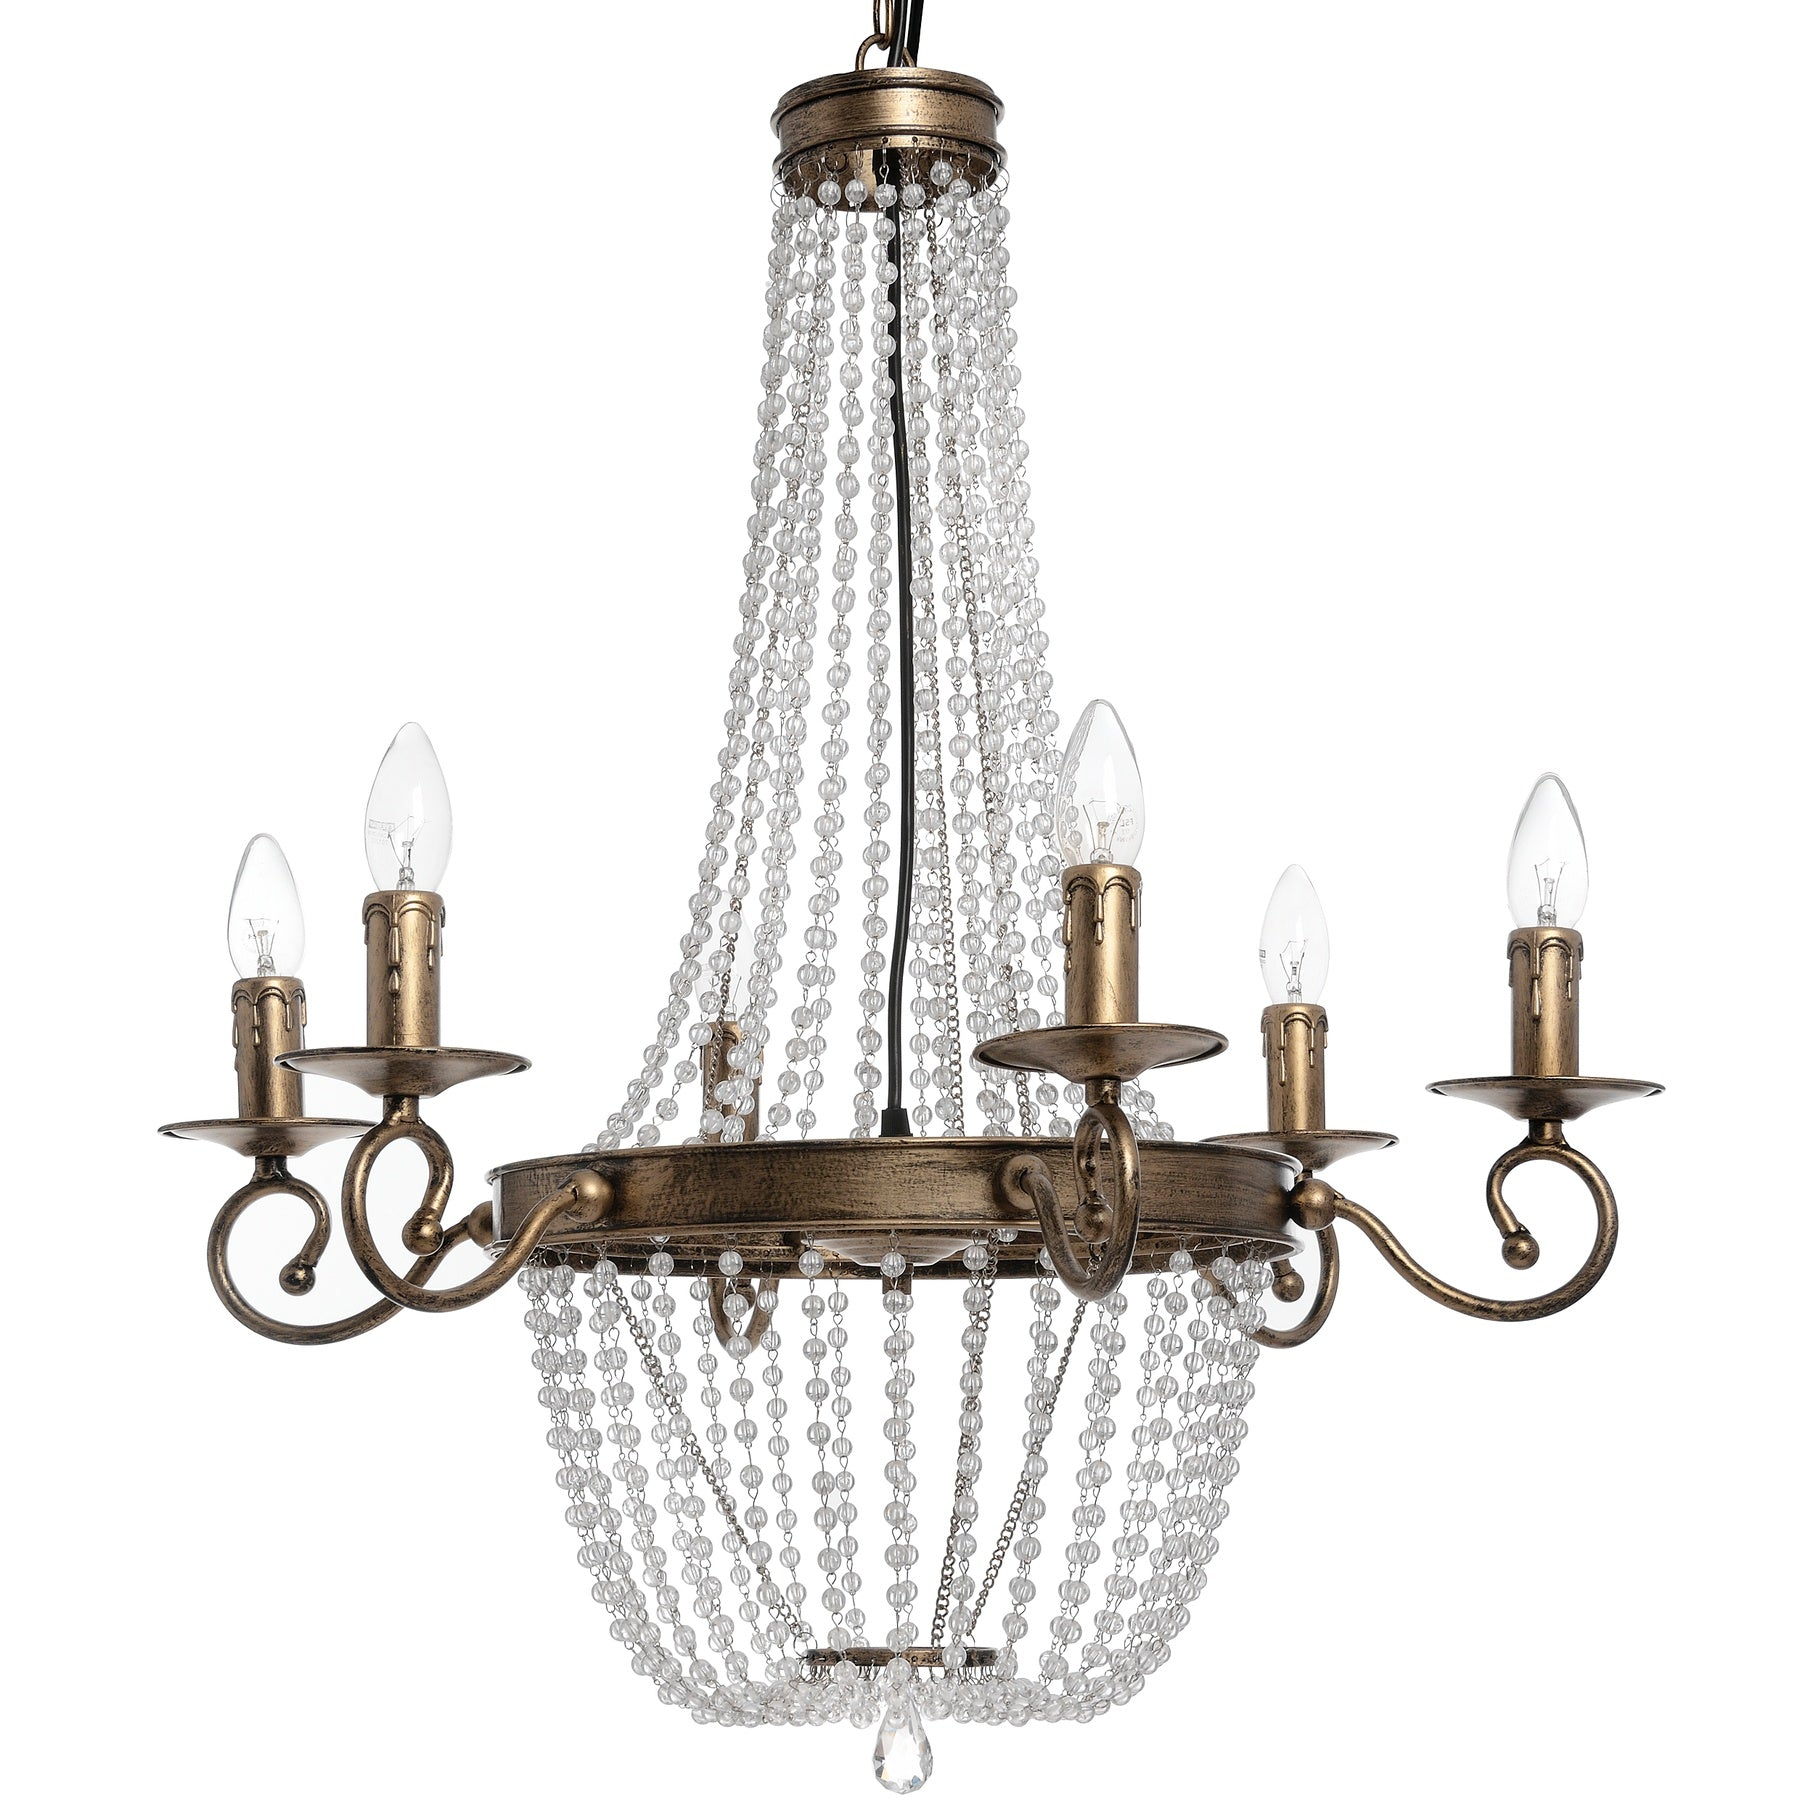 Antique Gold Venetian Chandelier